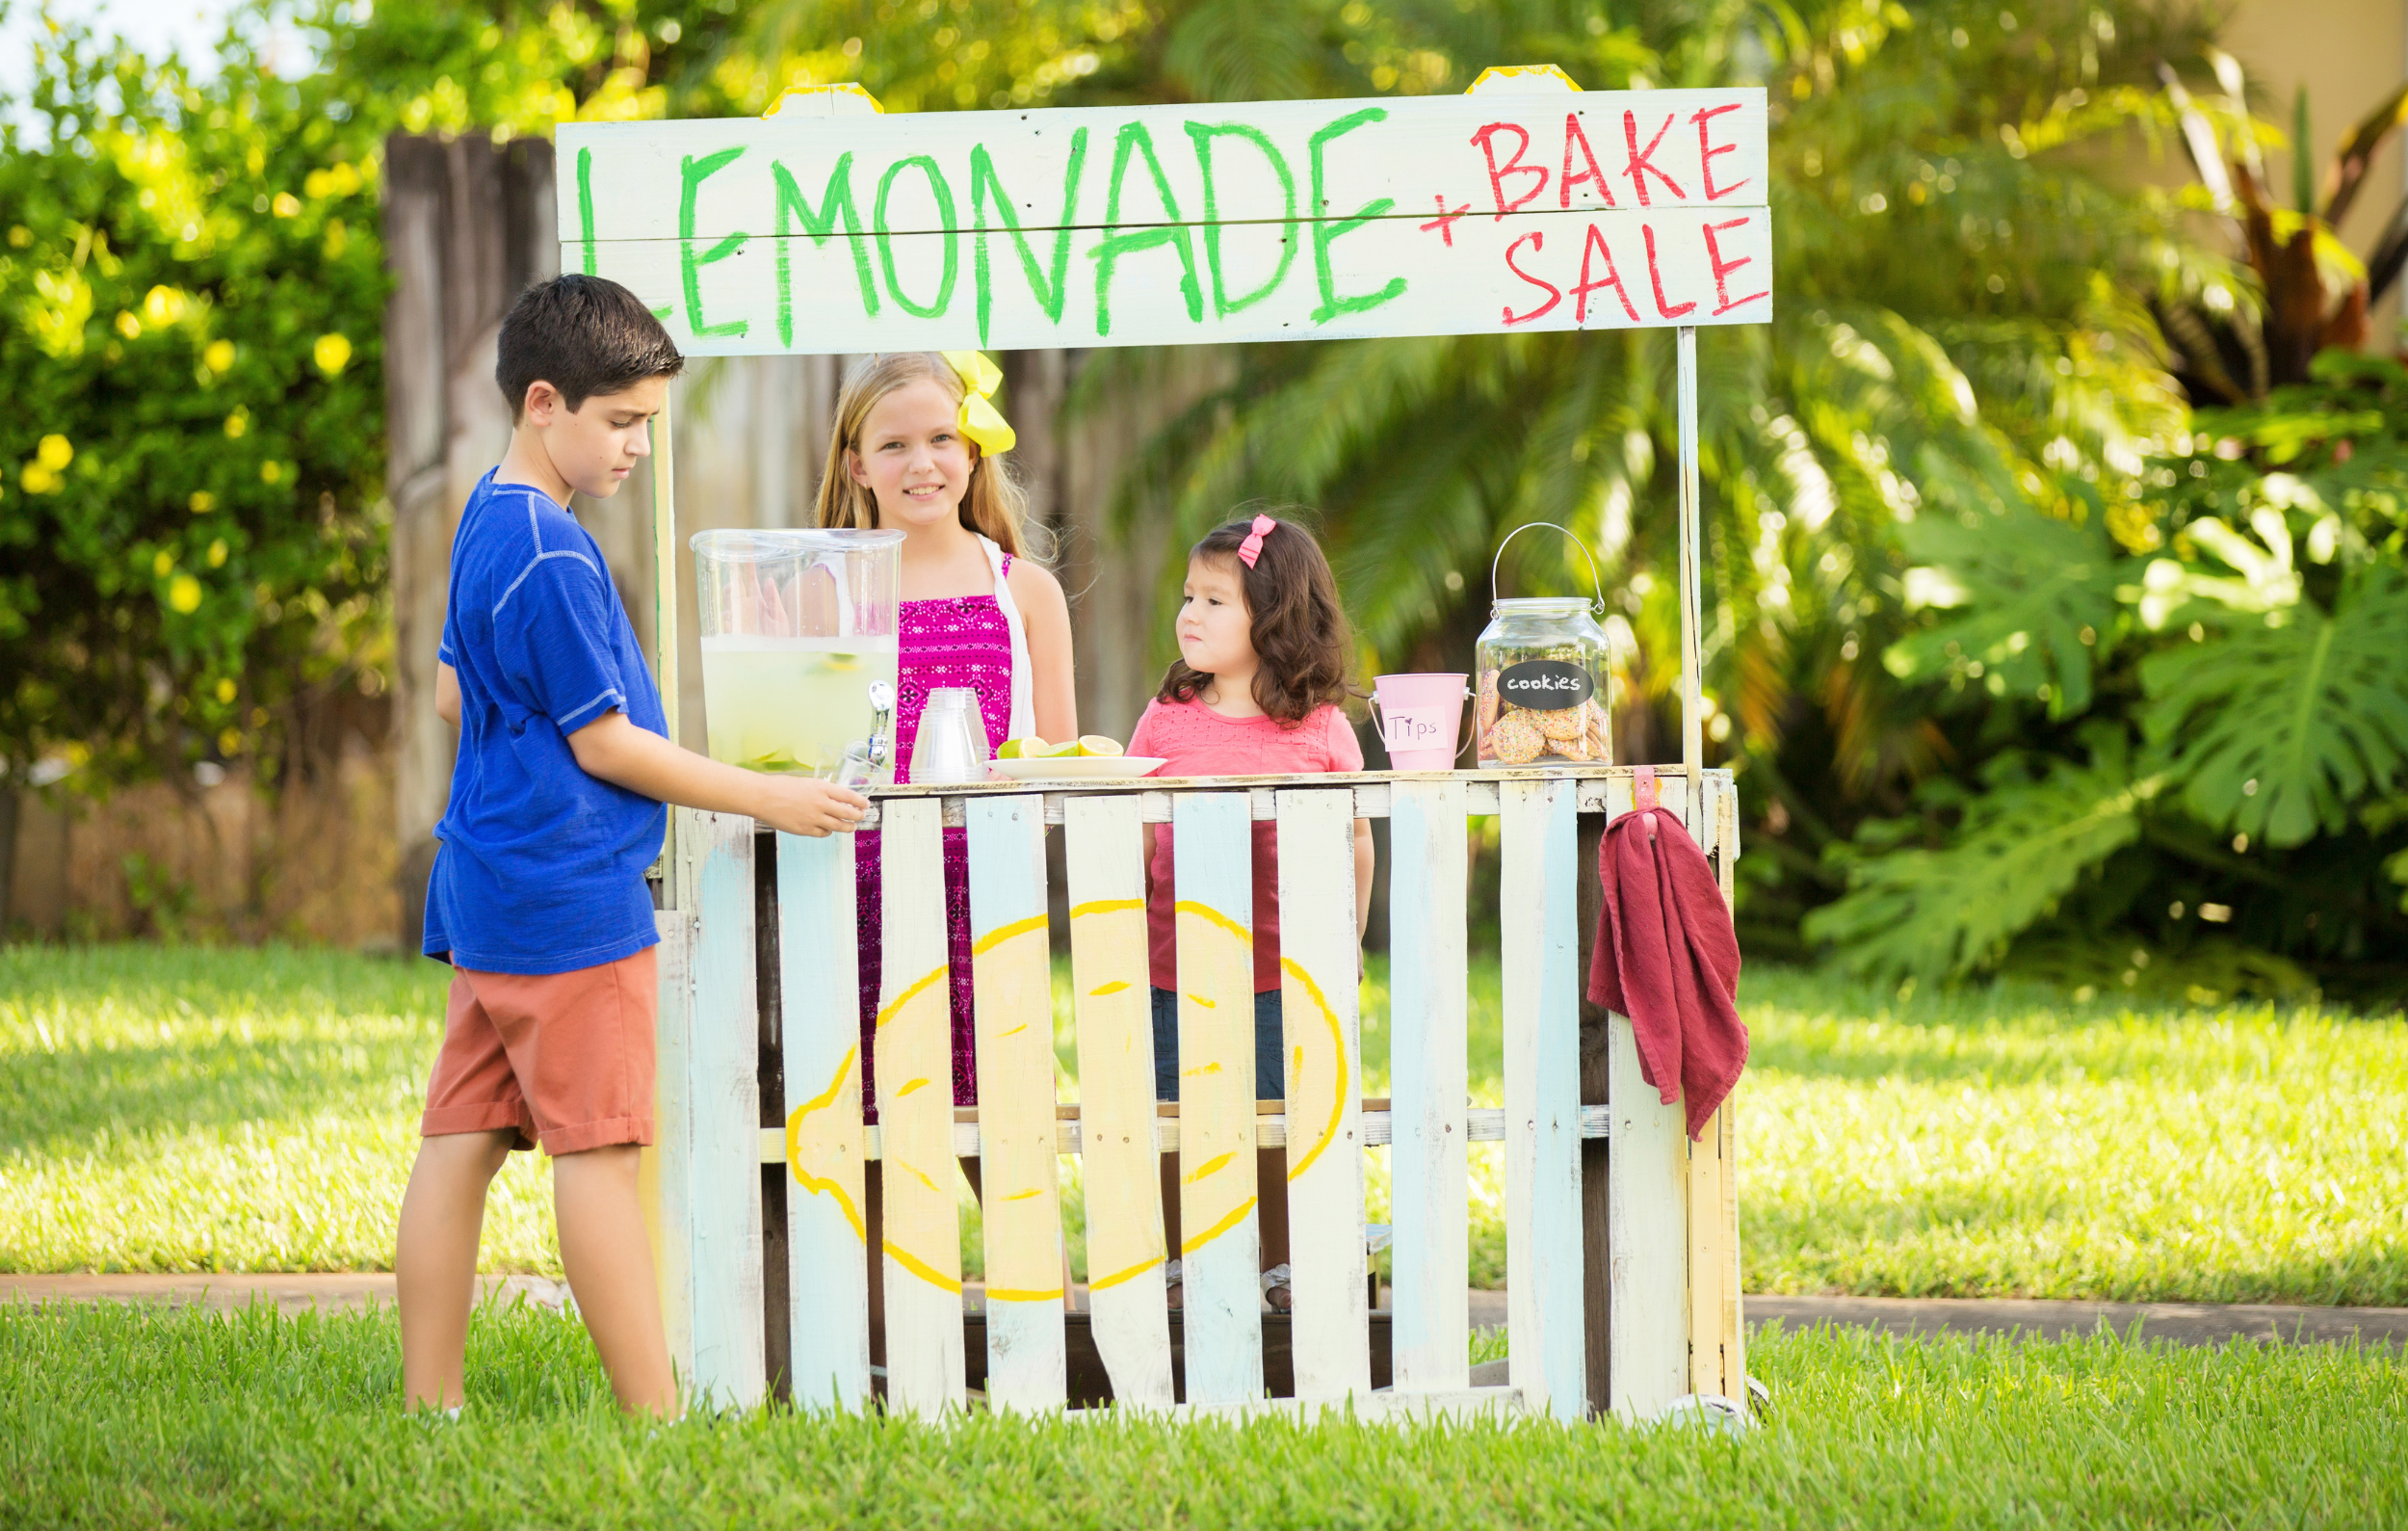 Kids' Business Ideas: Kids stand at a homemade lemonade stand. Sign above says lemonade and bake sale. Cookies and lemonade sit on the counter.